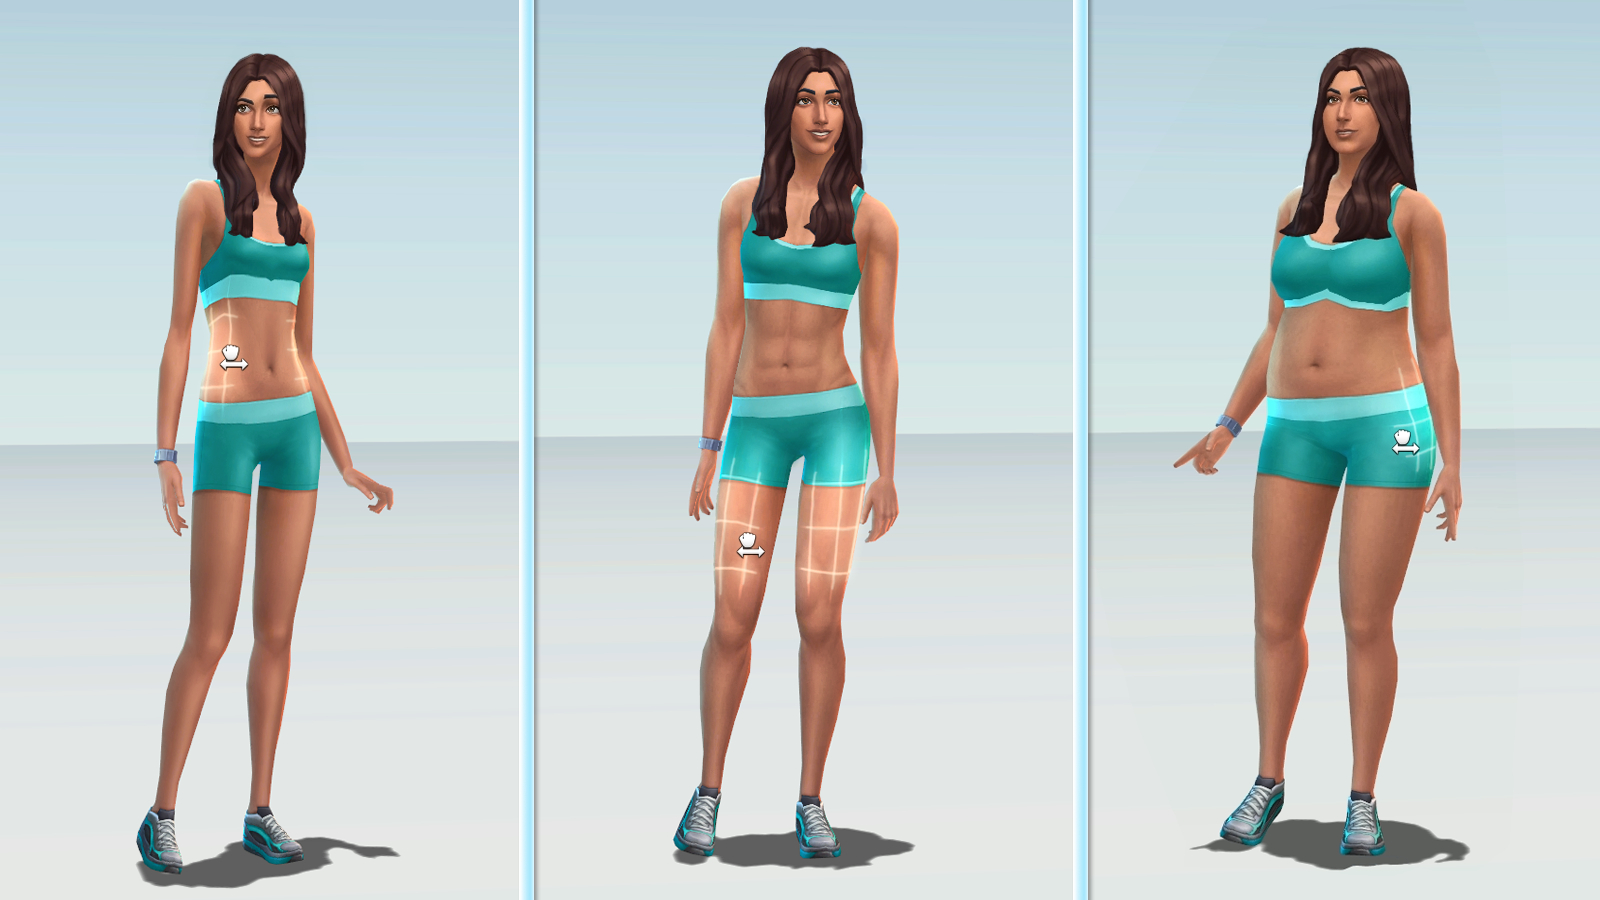 Galeria sims true life for Sims 4 raumgestaltung